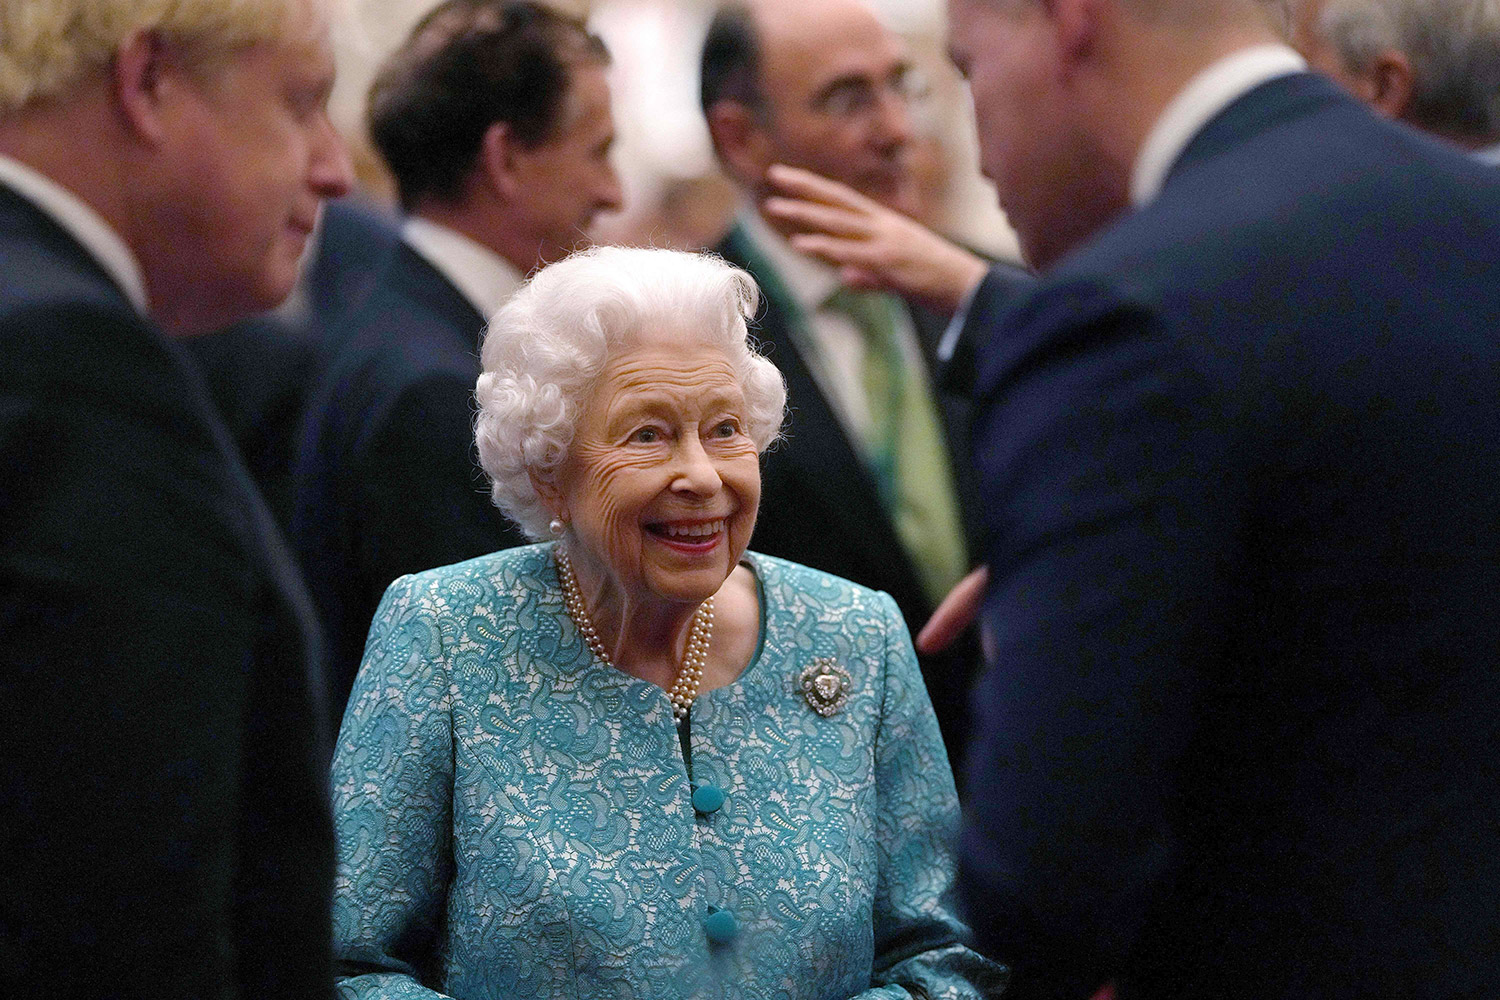 Royals at Global Investment Summit